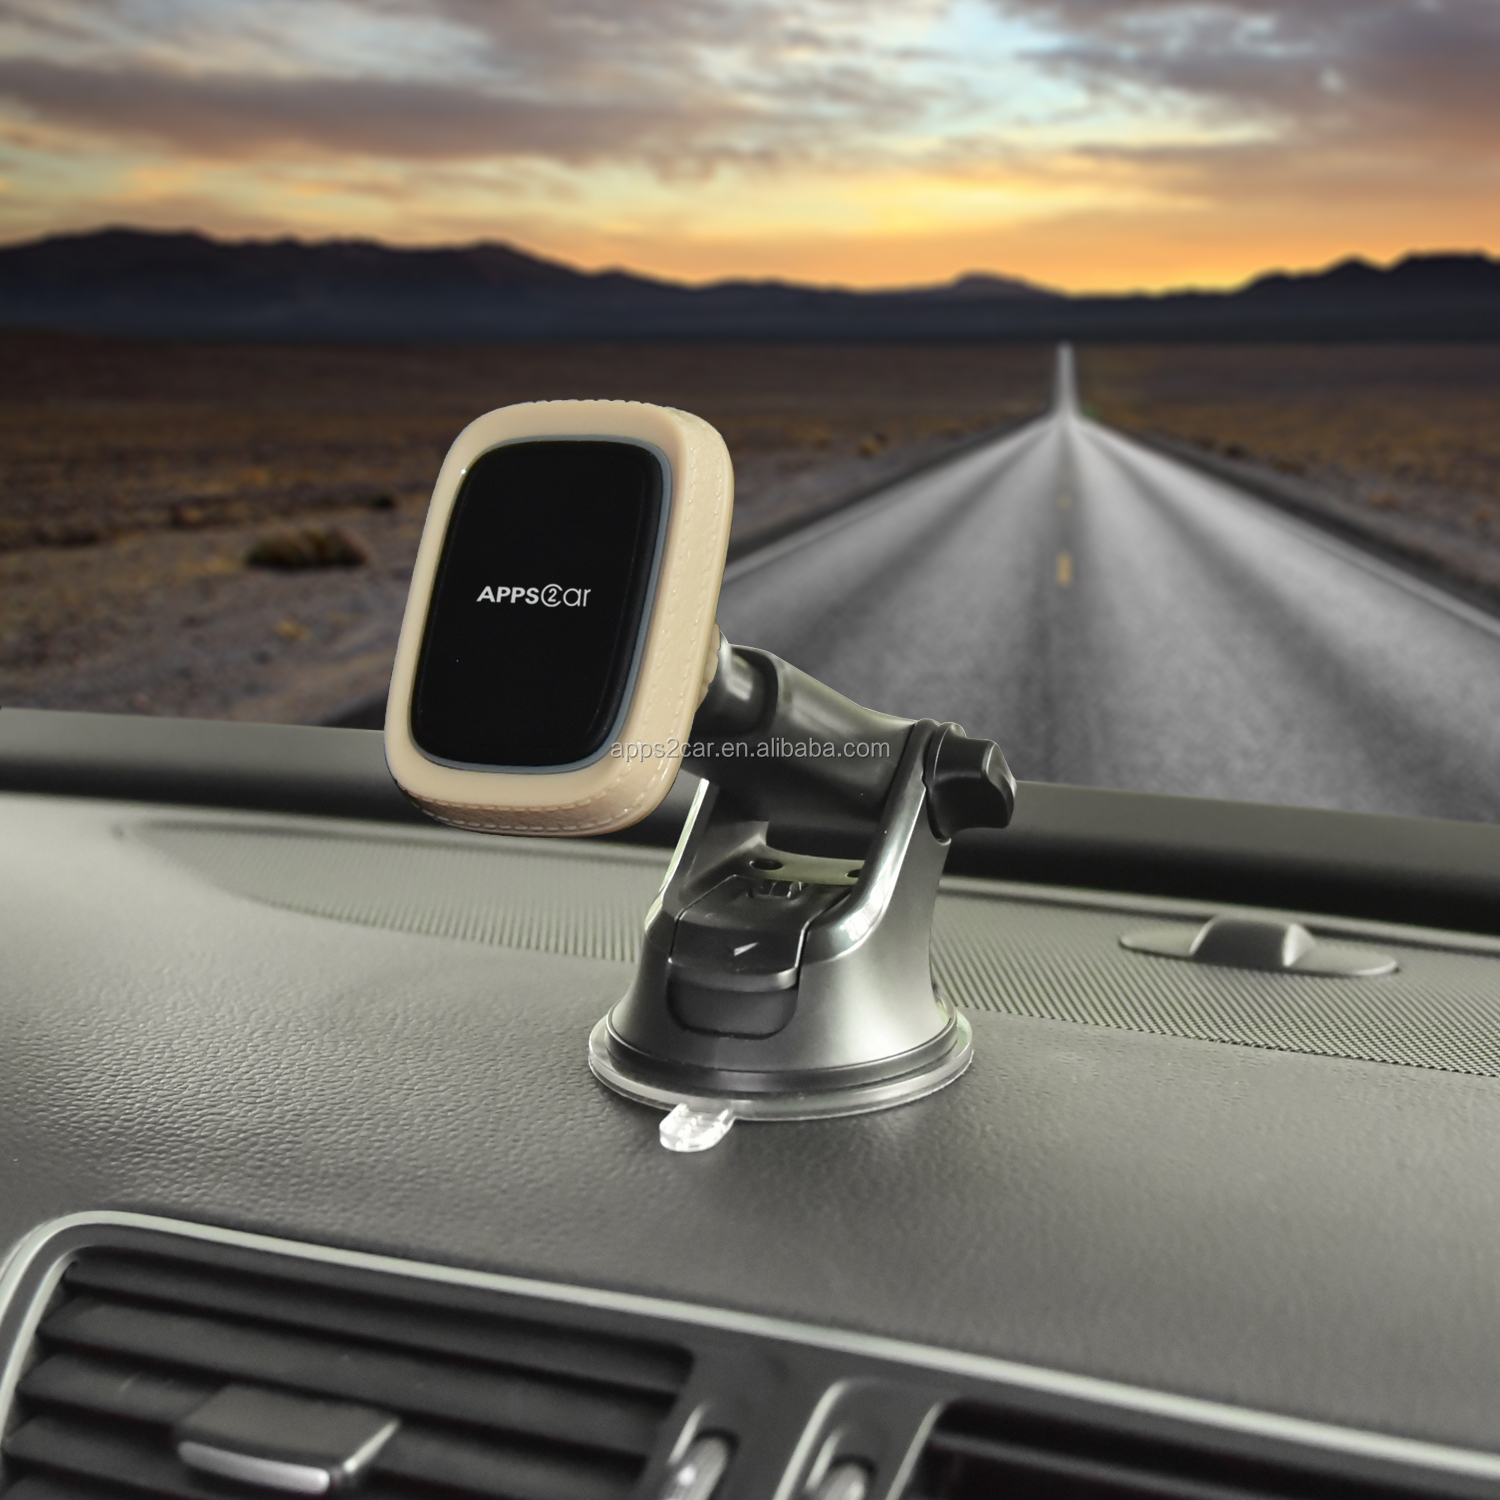 Apps2car Mobile Phone Accessories Dashboard Car Phone Holder Suction  Car Magnetic Phone Holder